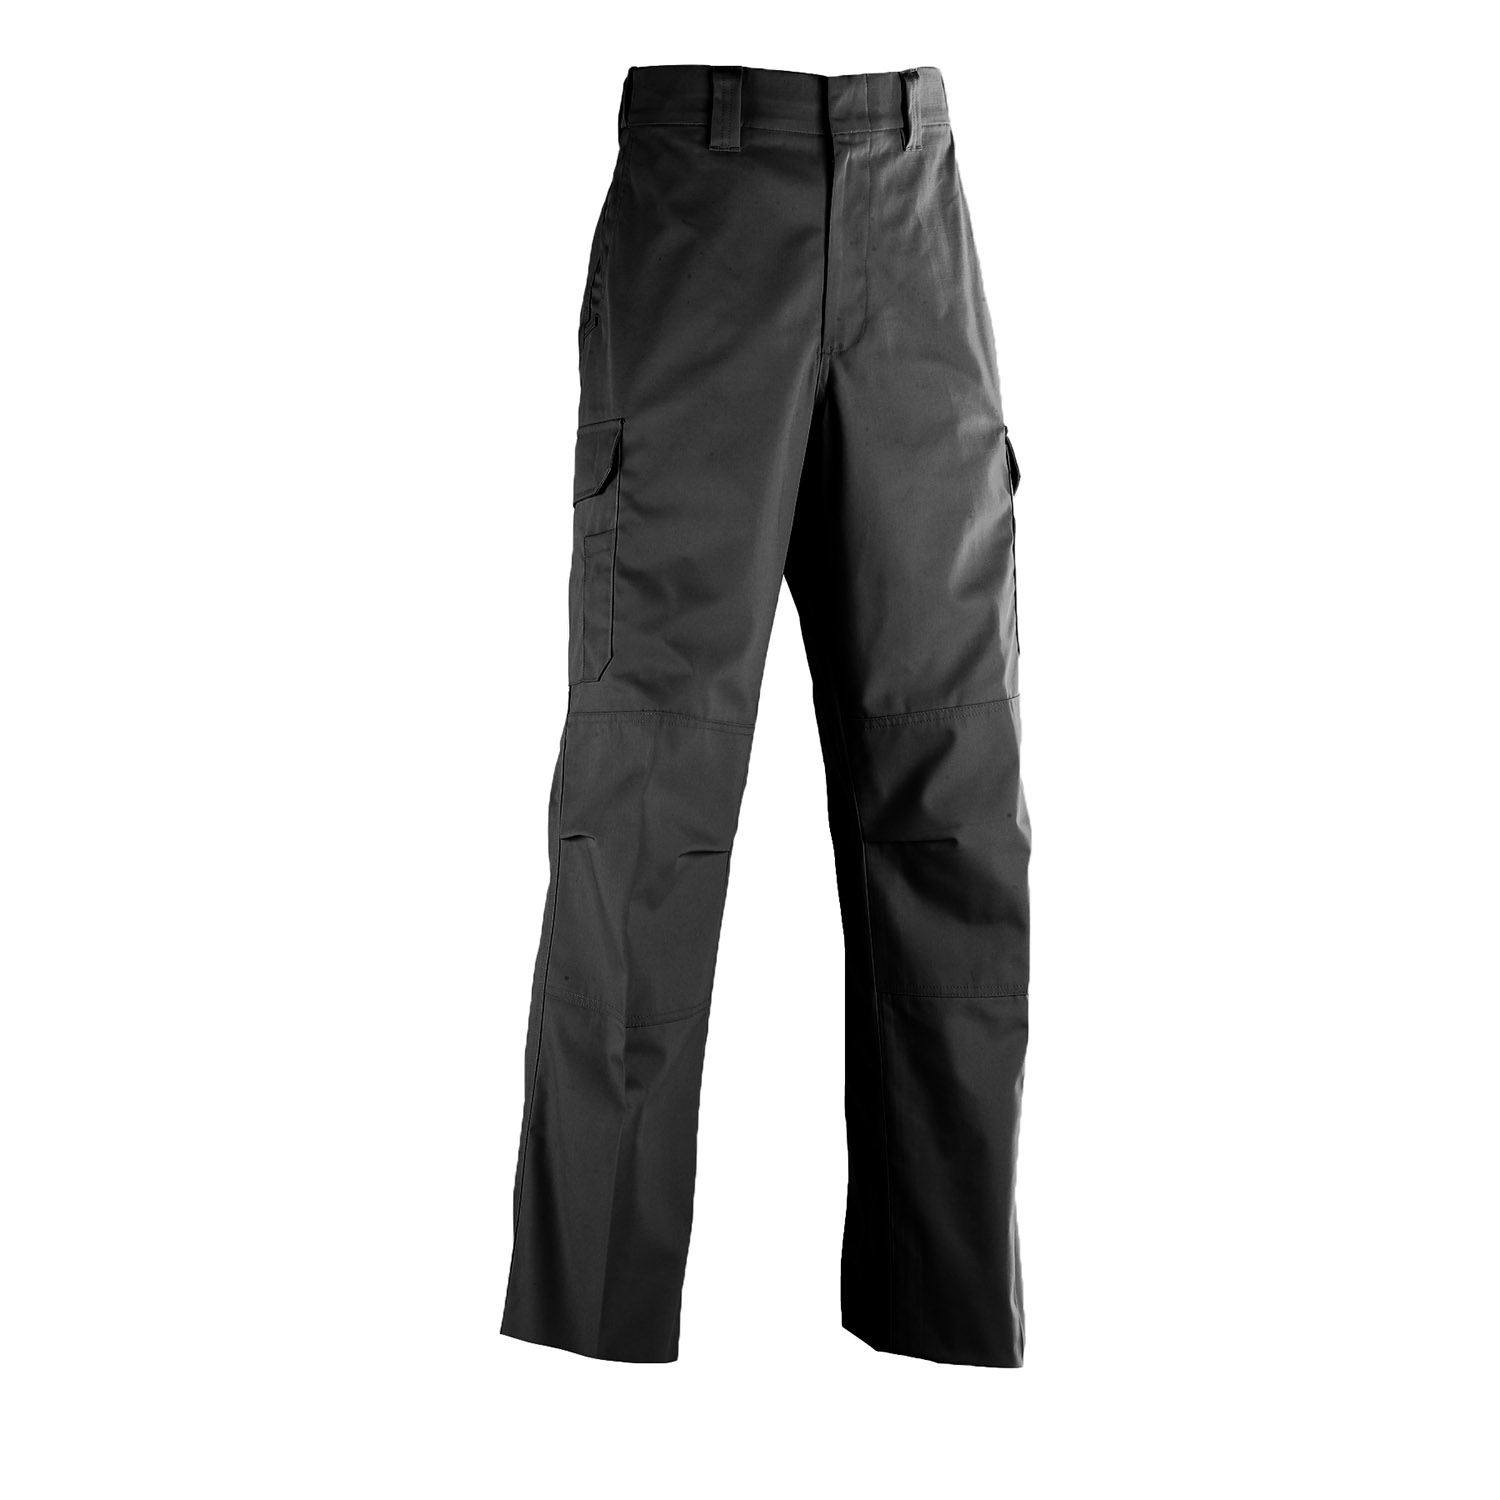 Elbeco Ripstop ADU Trousers